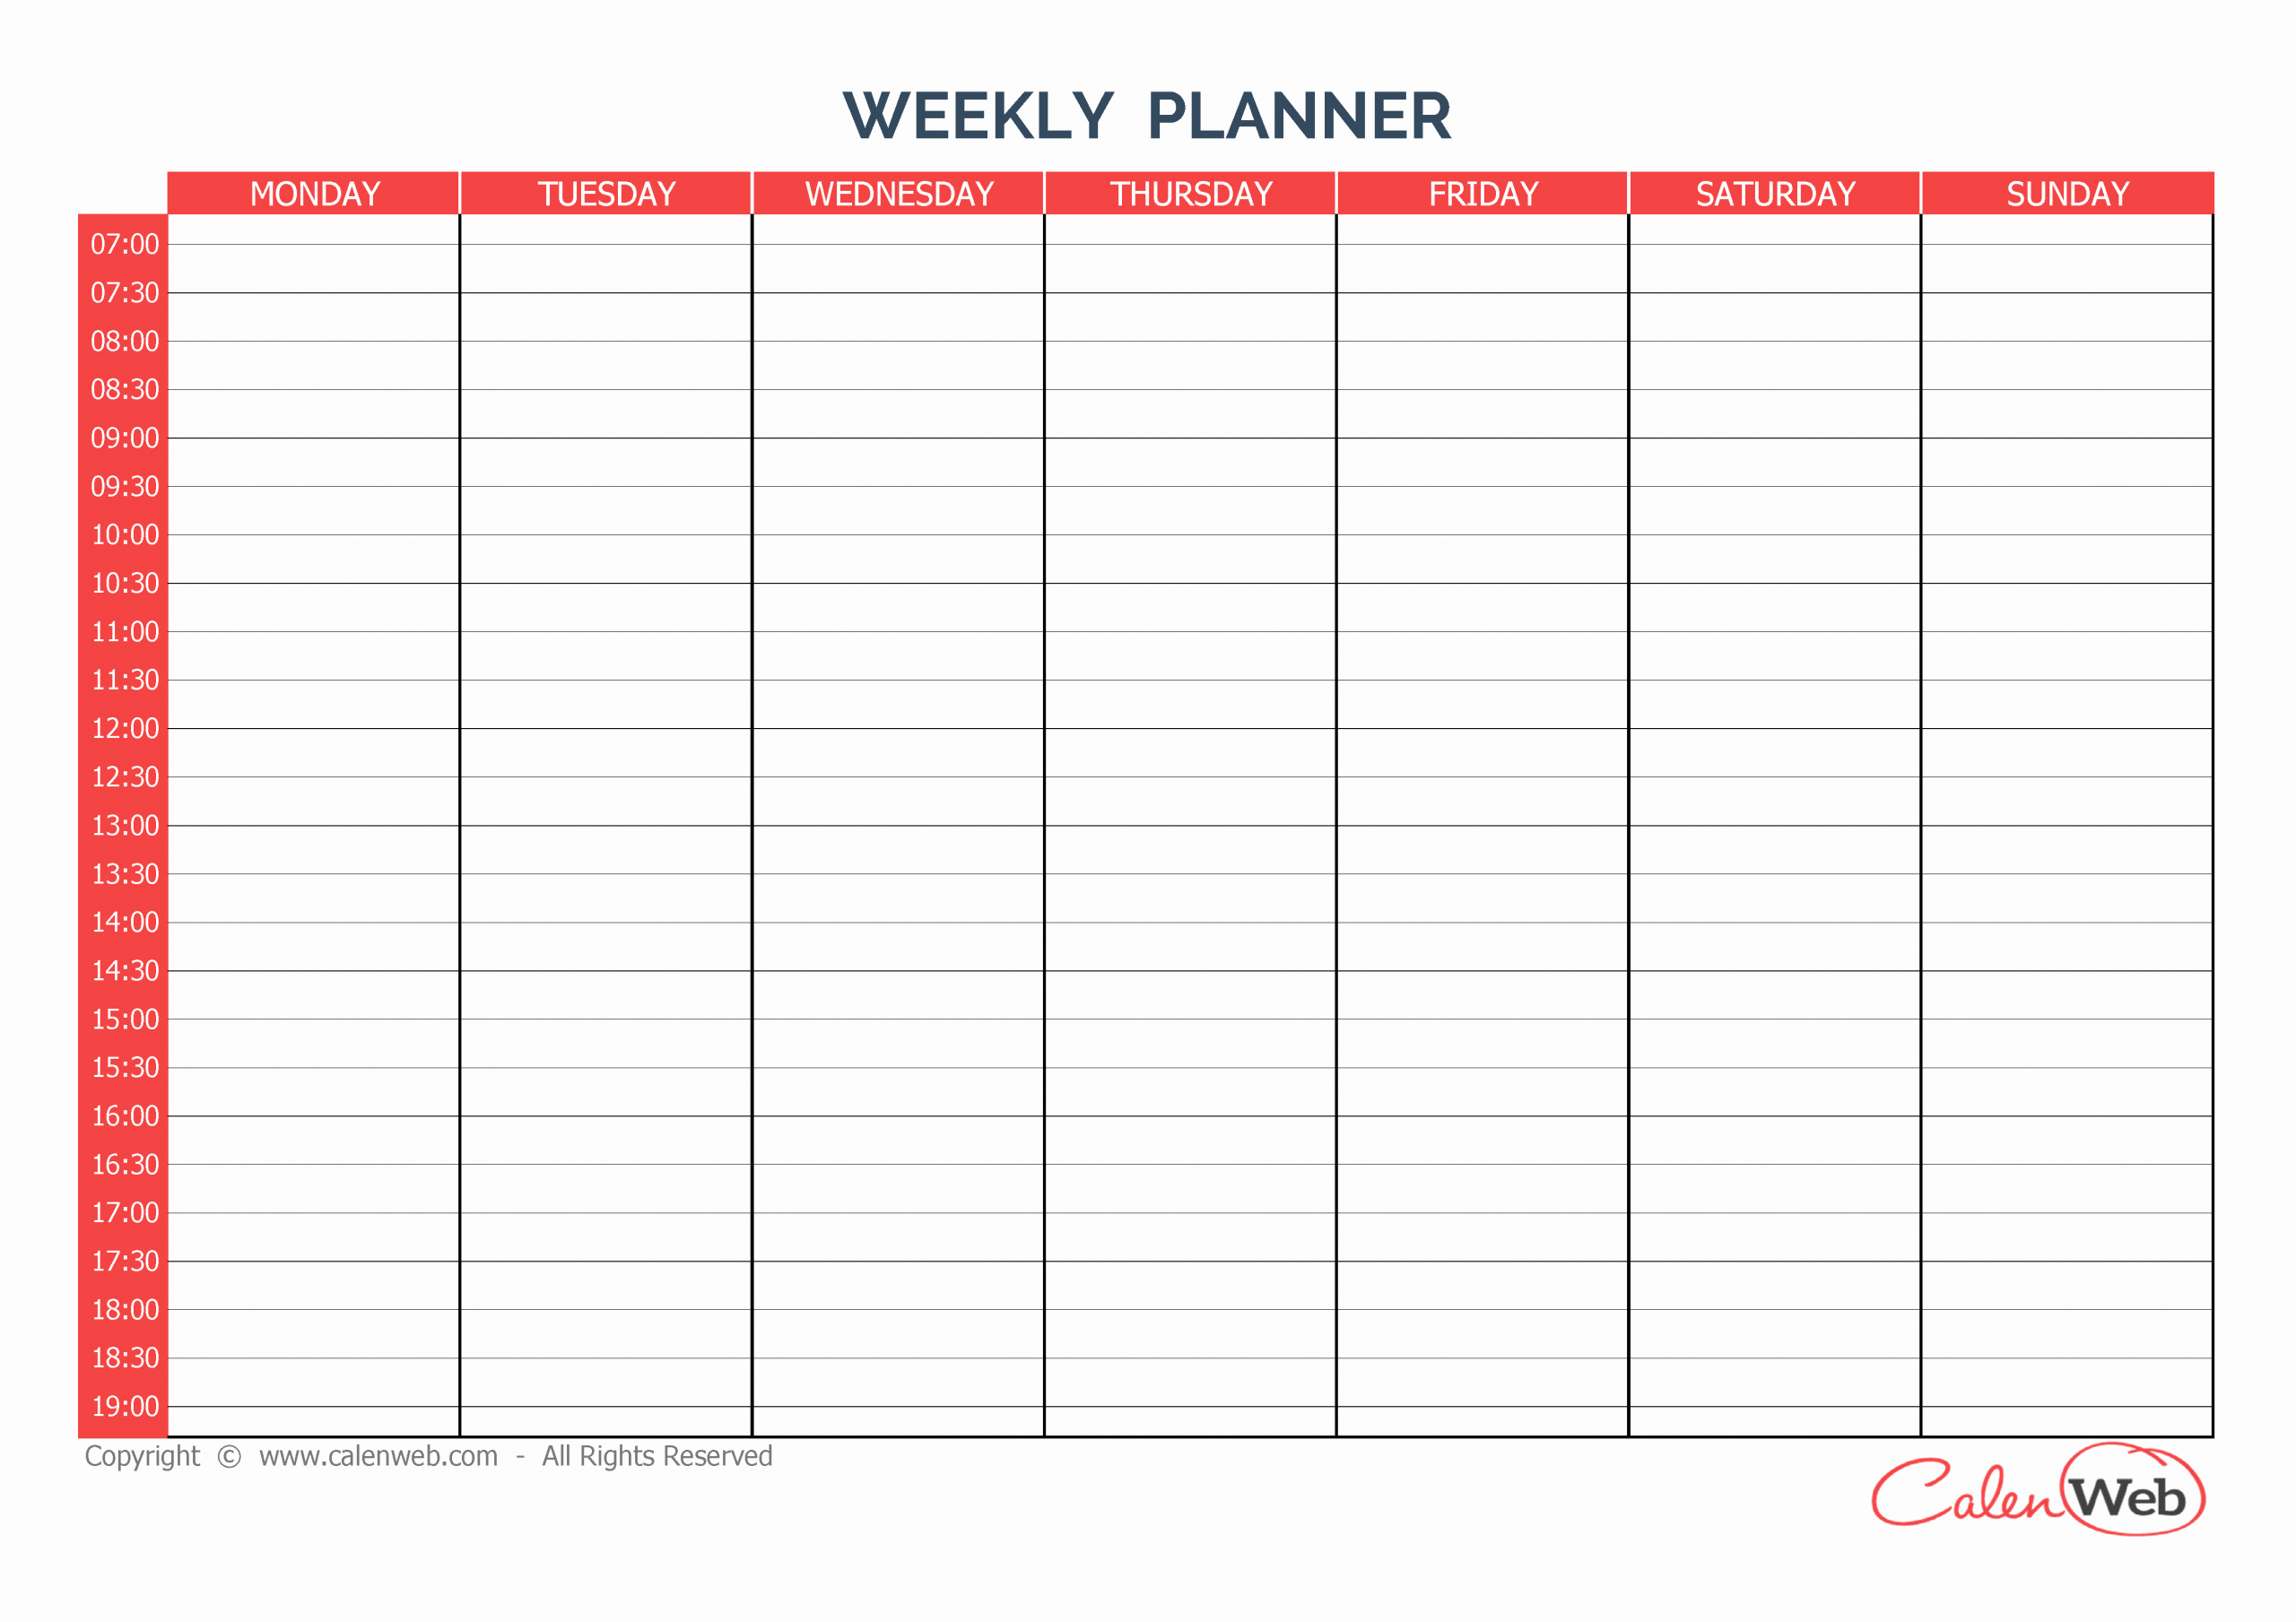 7 Day Week Schedule Template Luxury Weekly Planner 7 Days First Day Monday A Week Of 7 Days